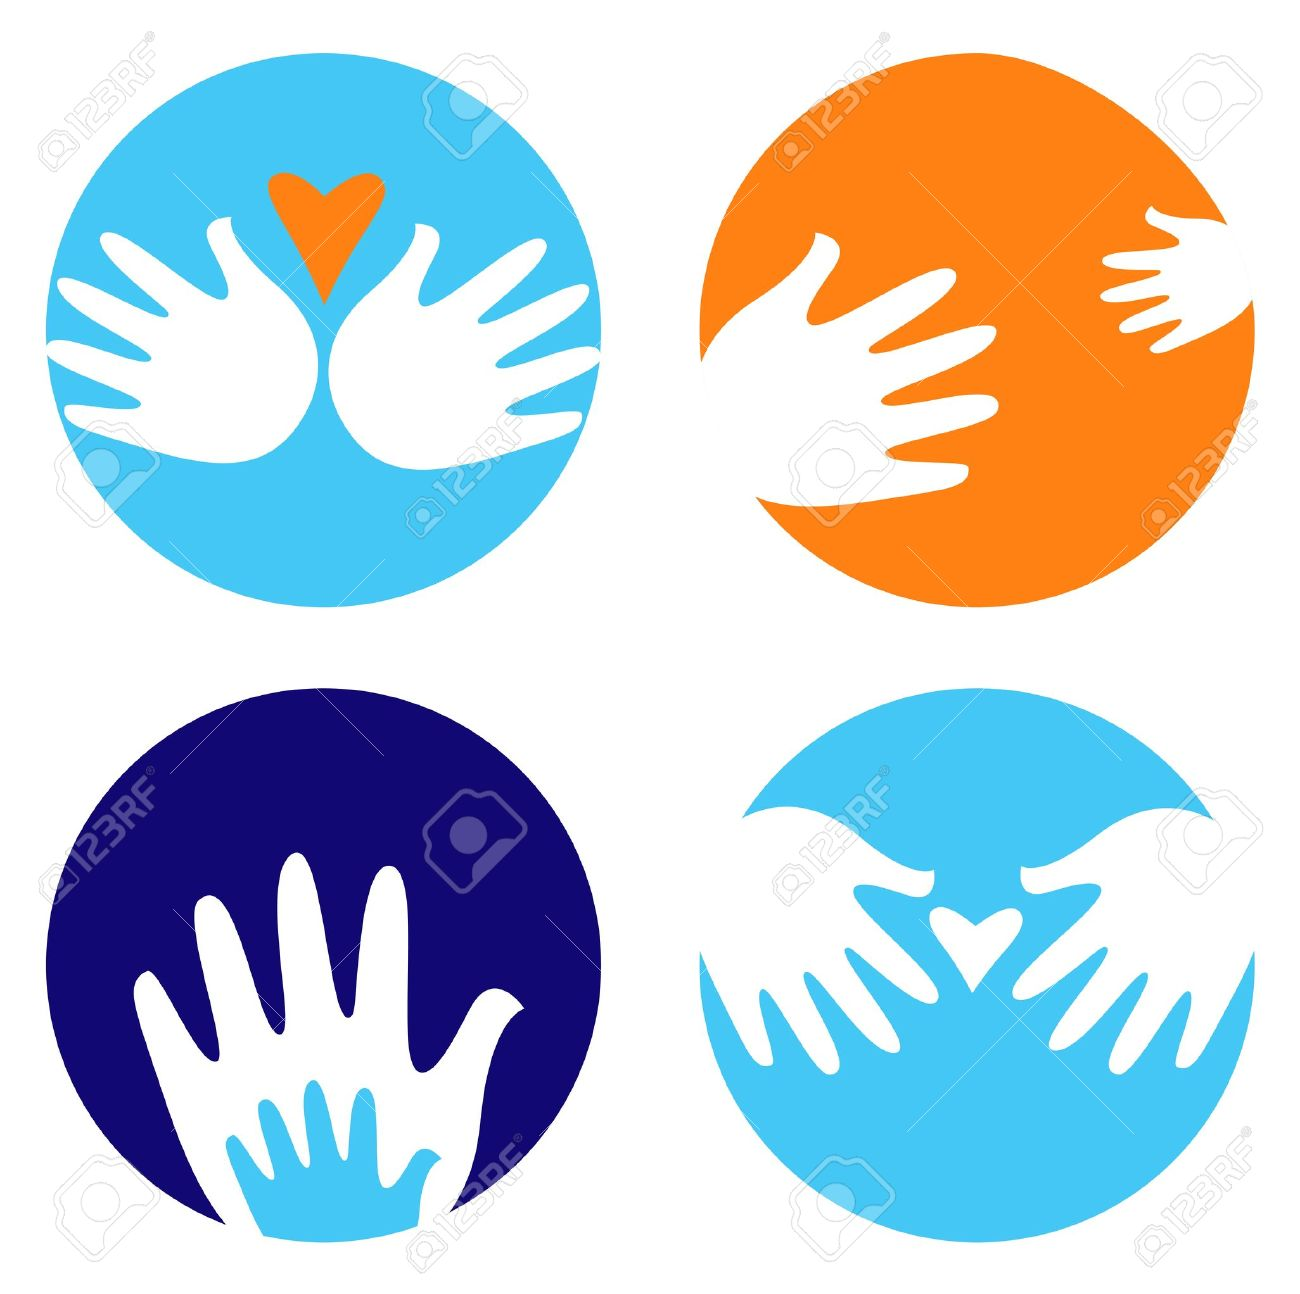 Hand icons and symbols in Helping Hand Icon